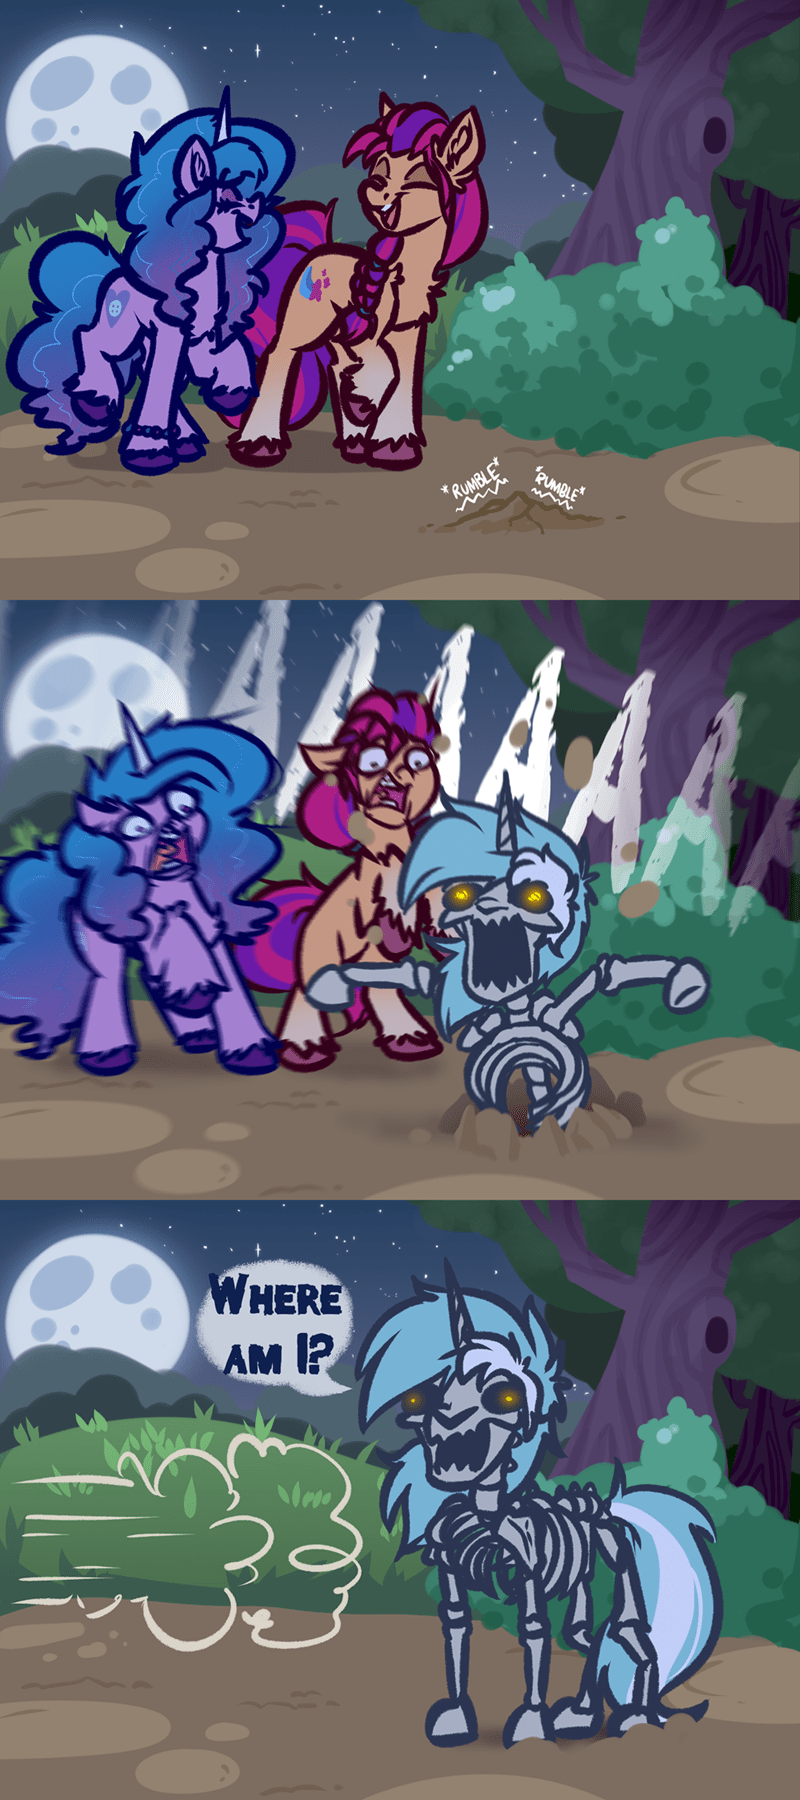 gen 5 sunny starscout halloween izzy moonbow witch taunter lyra heartstrings spooky scary skeletons - 9642303744